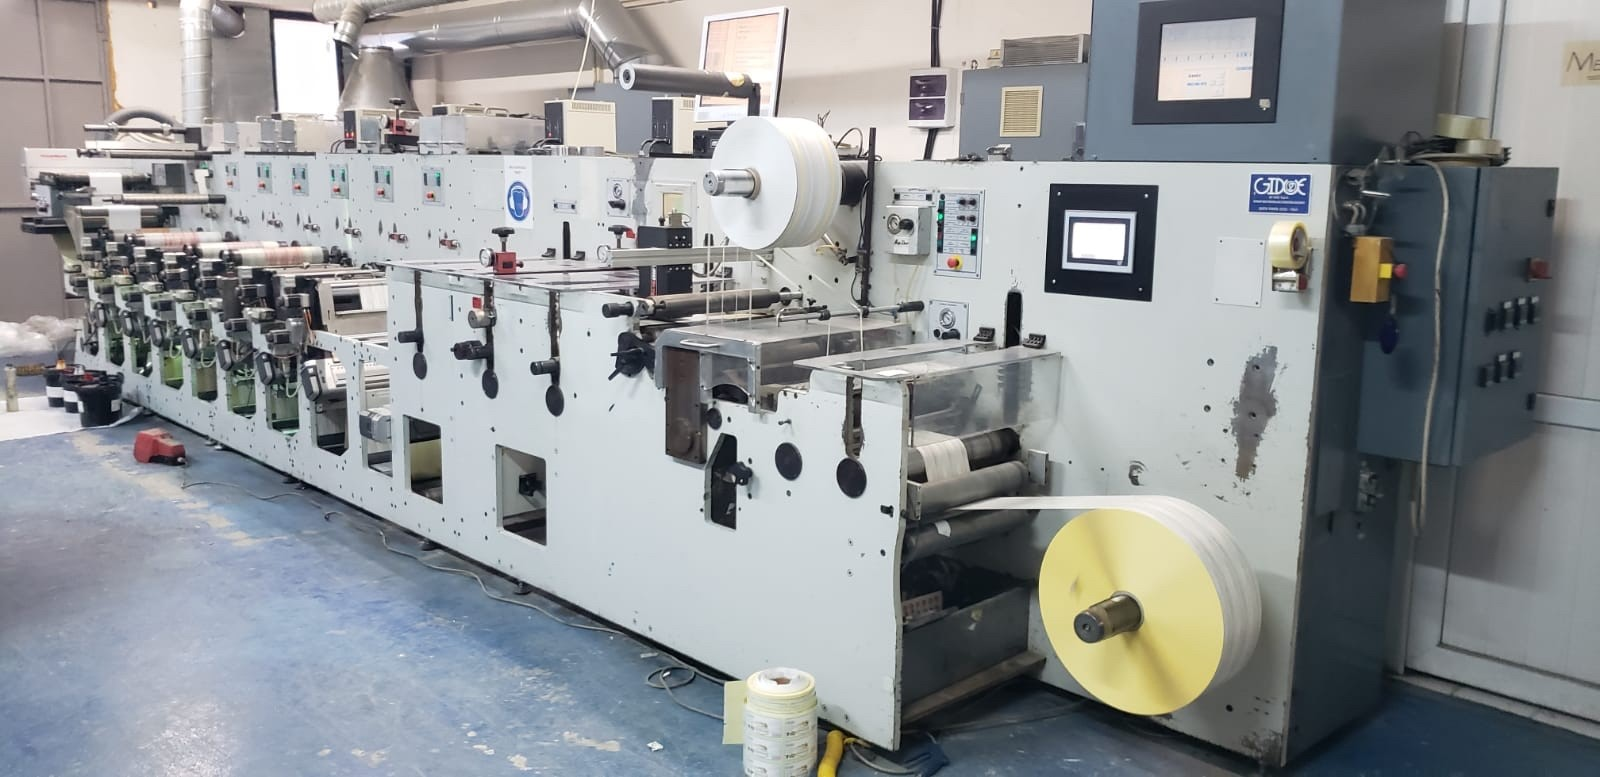 Gidue Combat 430 - Used Flexo Printing Presses and Used Flexographic Equipment-0